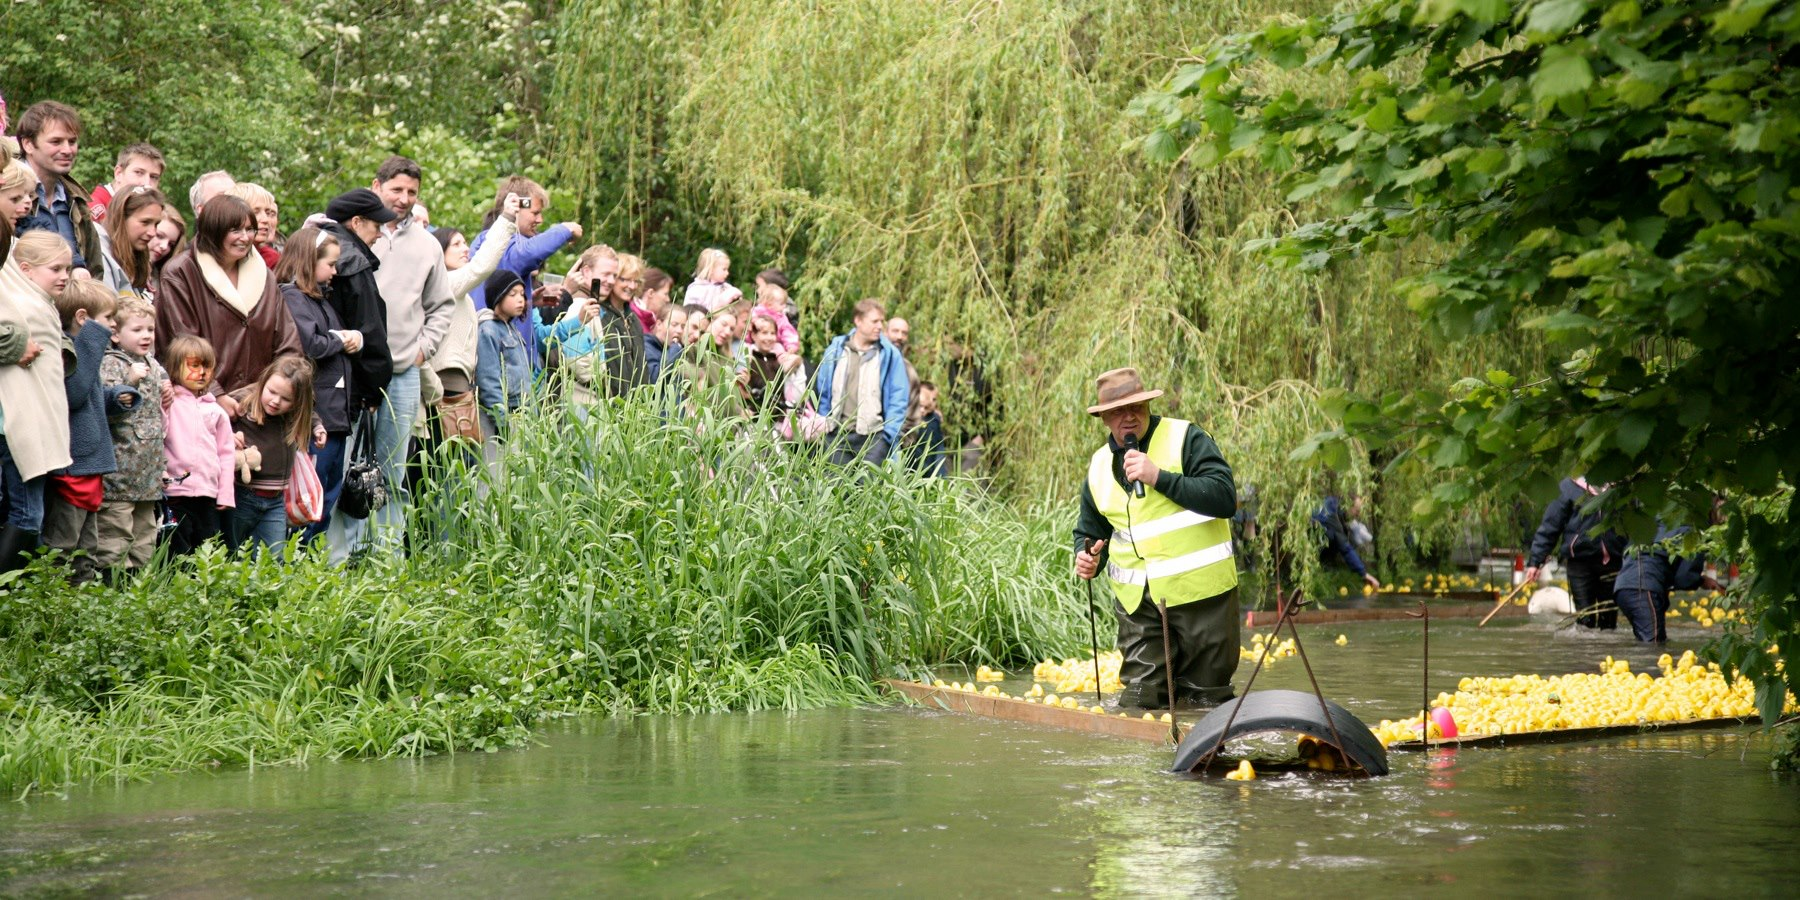 glos.info south cerney street fair duck race 6c8da4